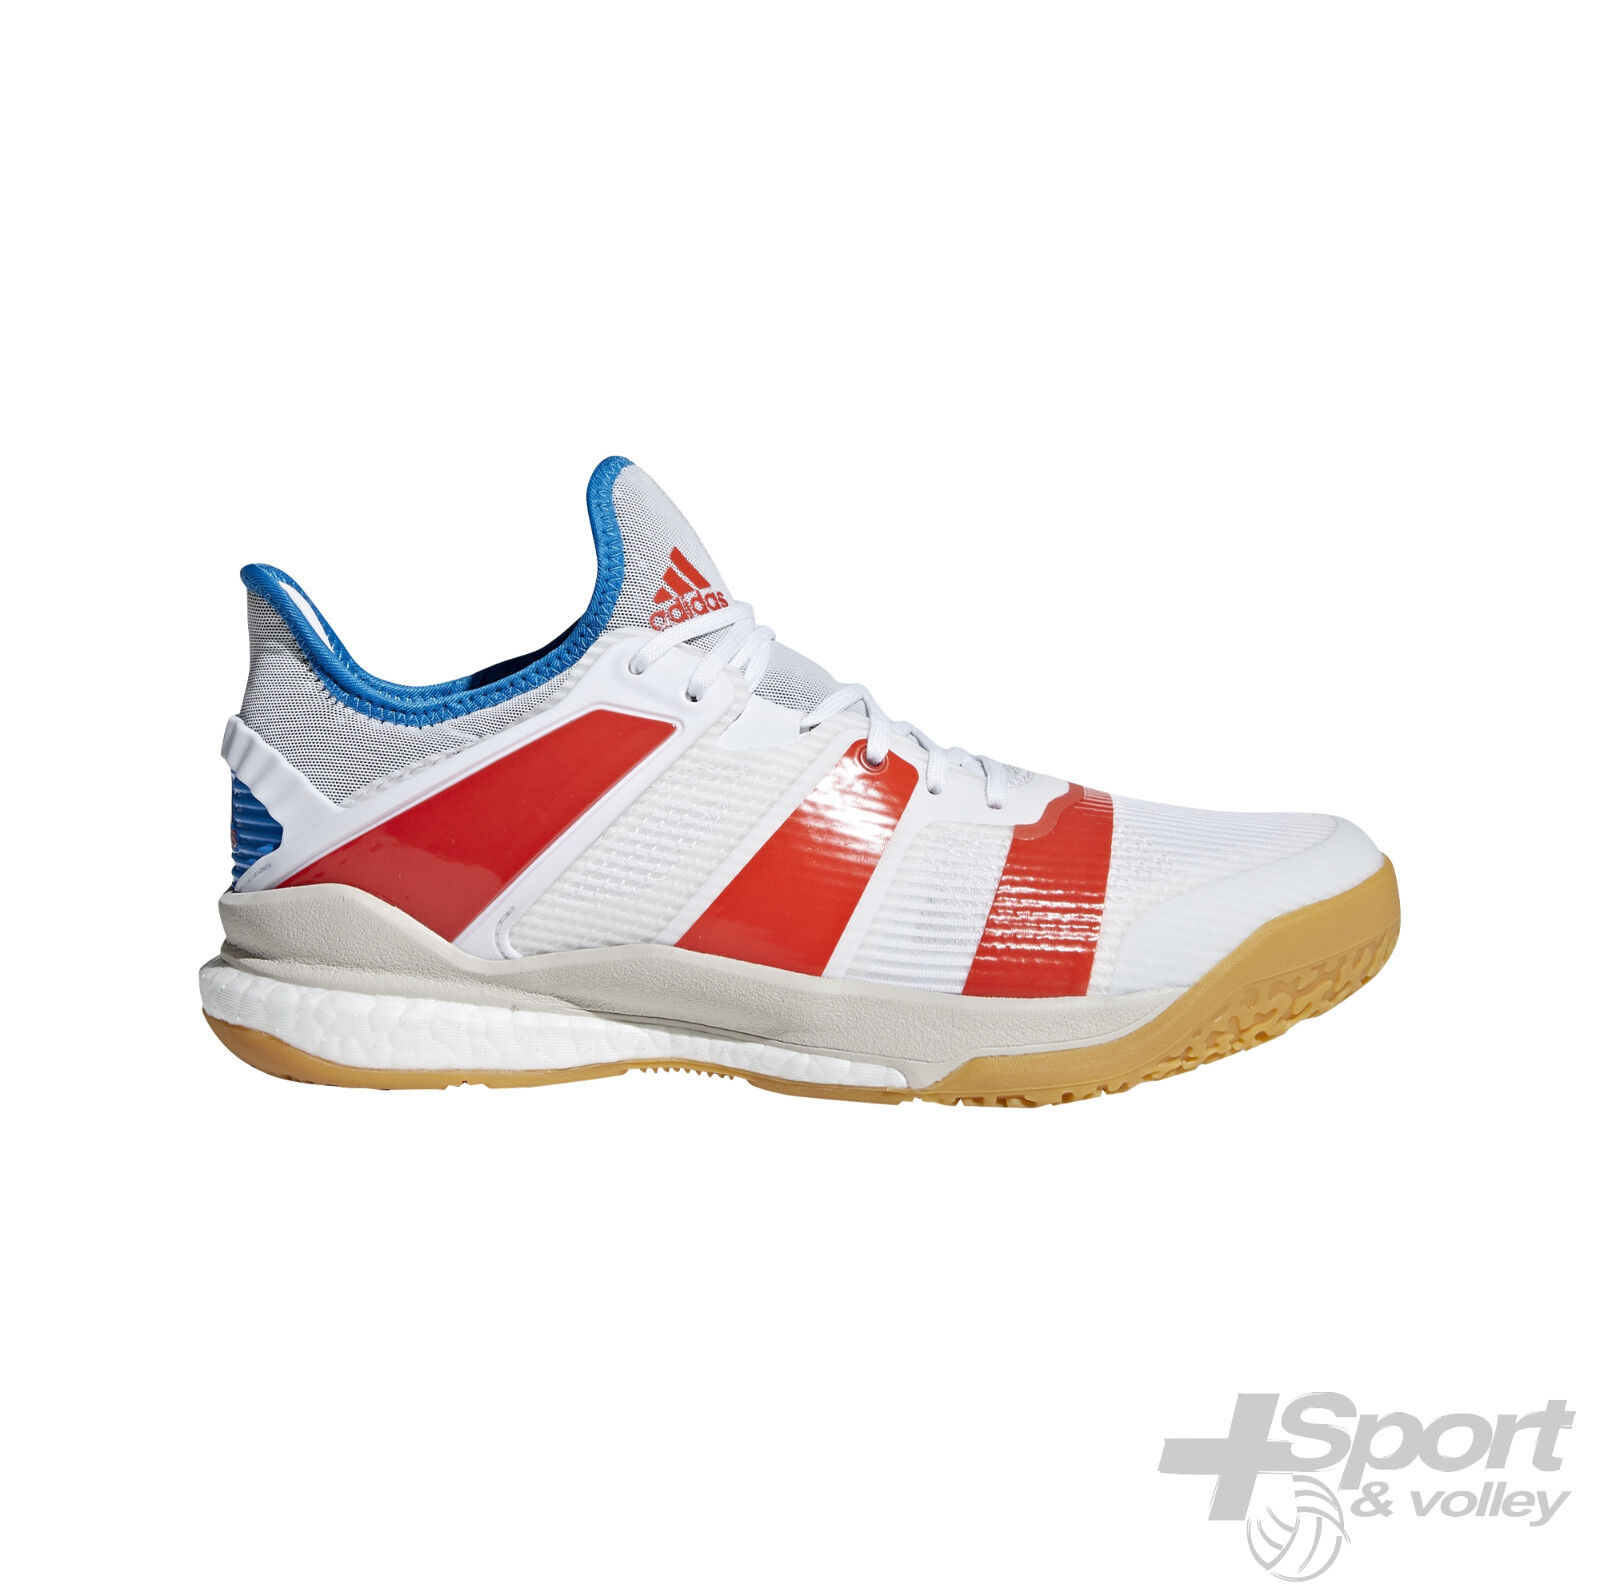 Chaussure volleyball Adidas Stabil X X X Low Man - B22571 NOVELTY 2018  890a3a